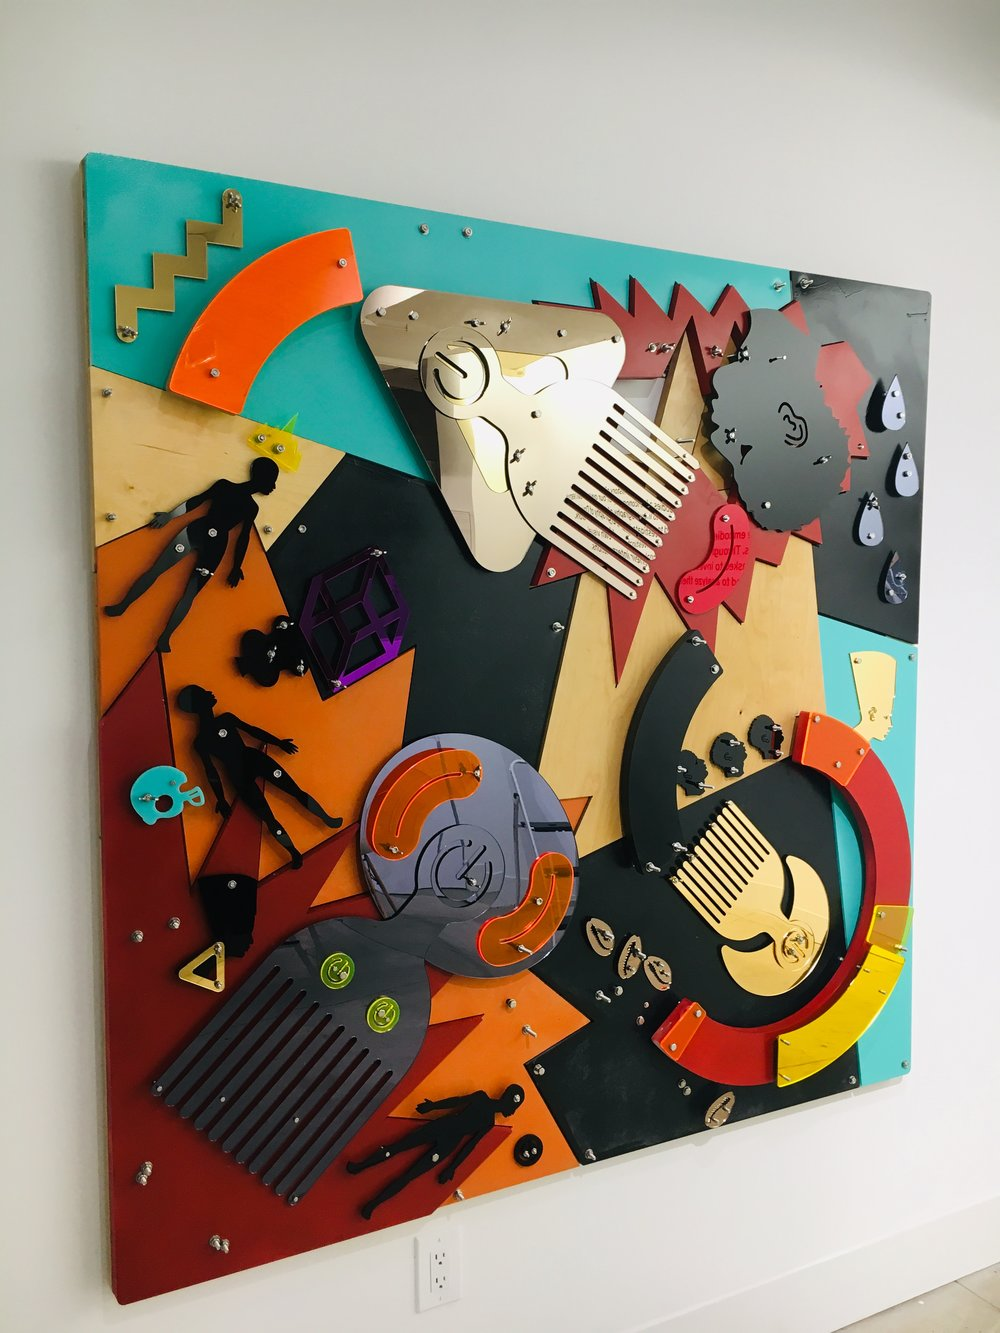 Improbable Cause (Blackamoors Collage #)   Plexiglass, Mirror, Stainless Steel and red oak board 60 x 60 in